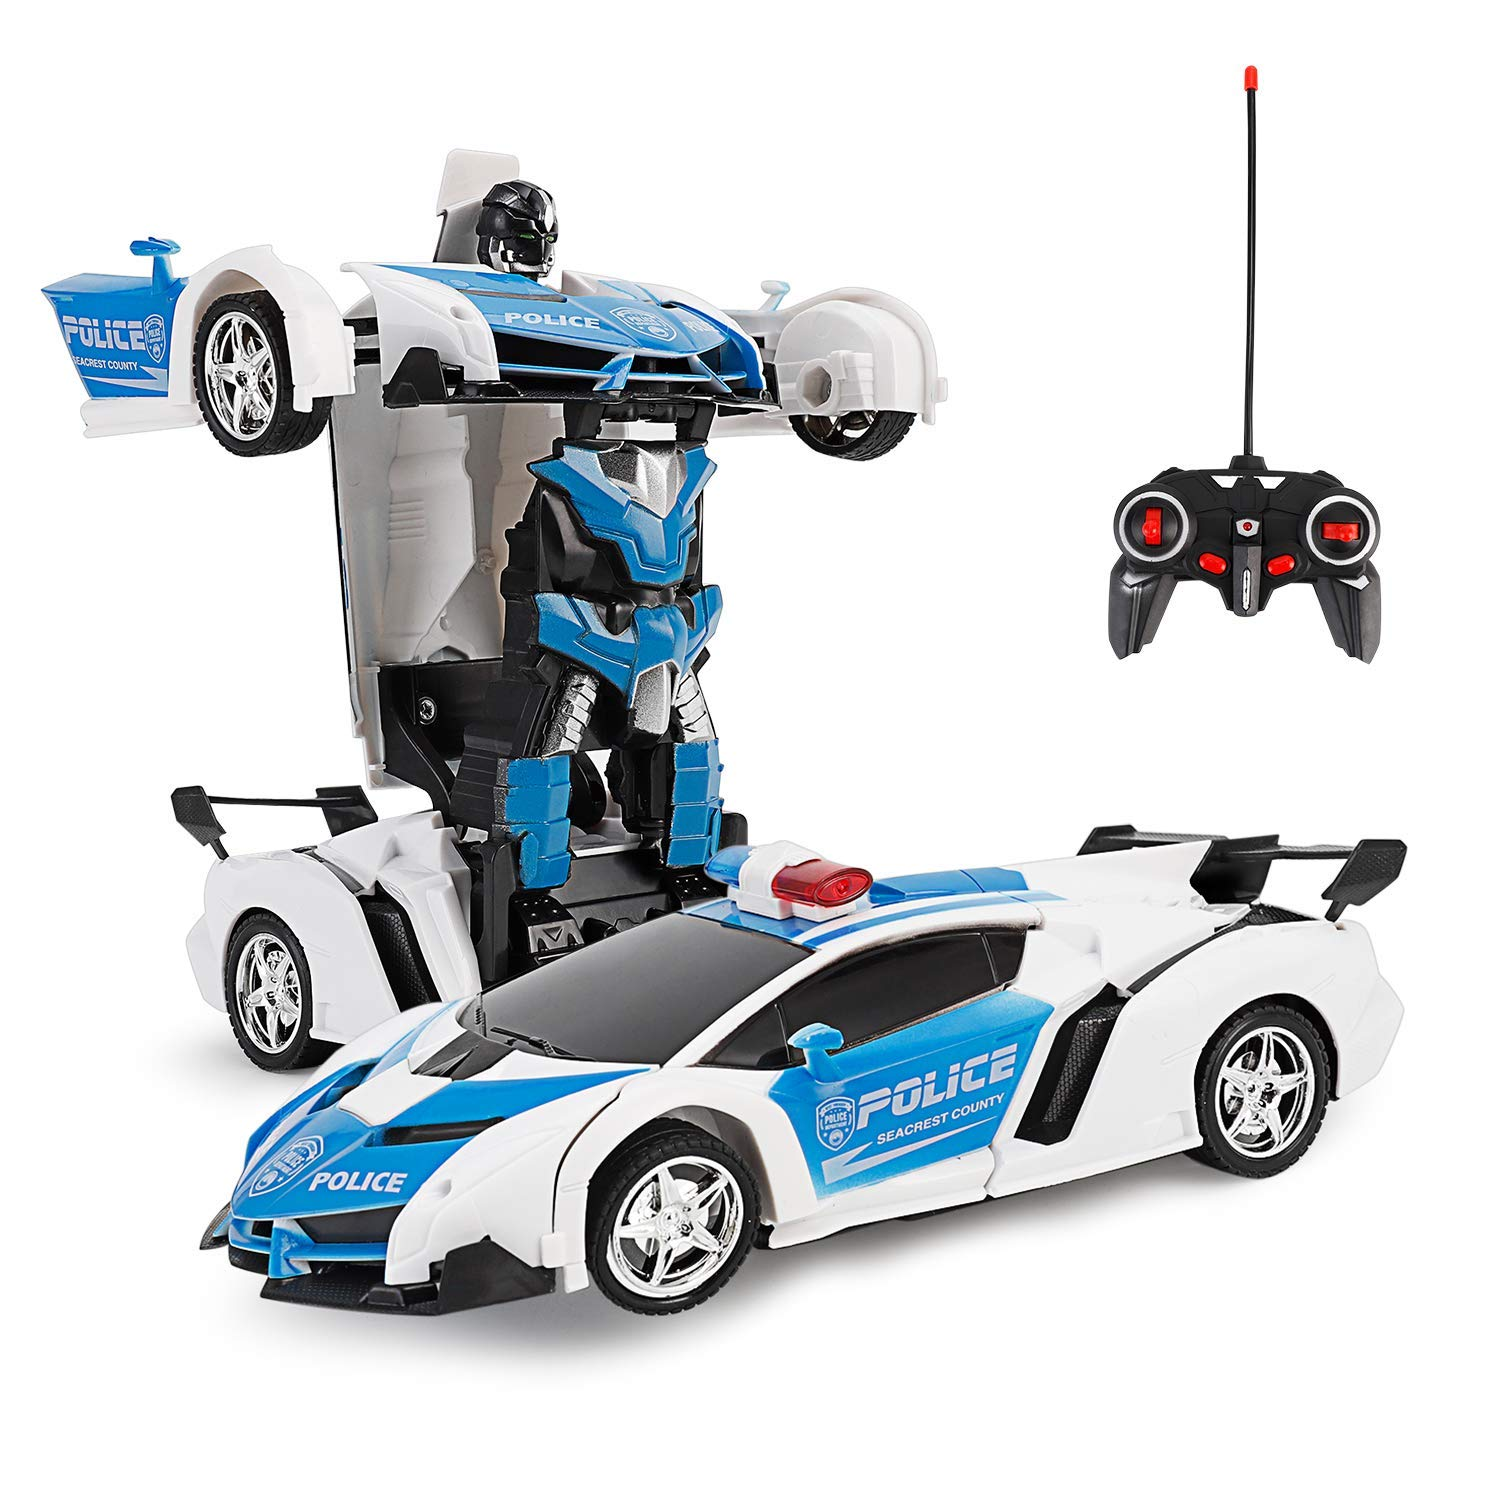 Zeroplusone Rc Car For Kids 1 18 Transform Car Robot 2 4ghz Rechargeable 360 Rotating Drifting Realistic Engine Sounds Remote Control Toy Car Best Kids And Adults Police Car Amazon Com Au Toys Games